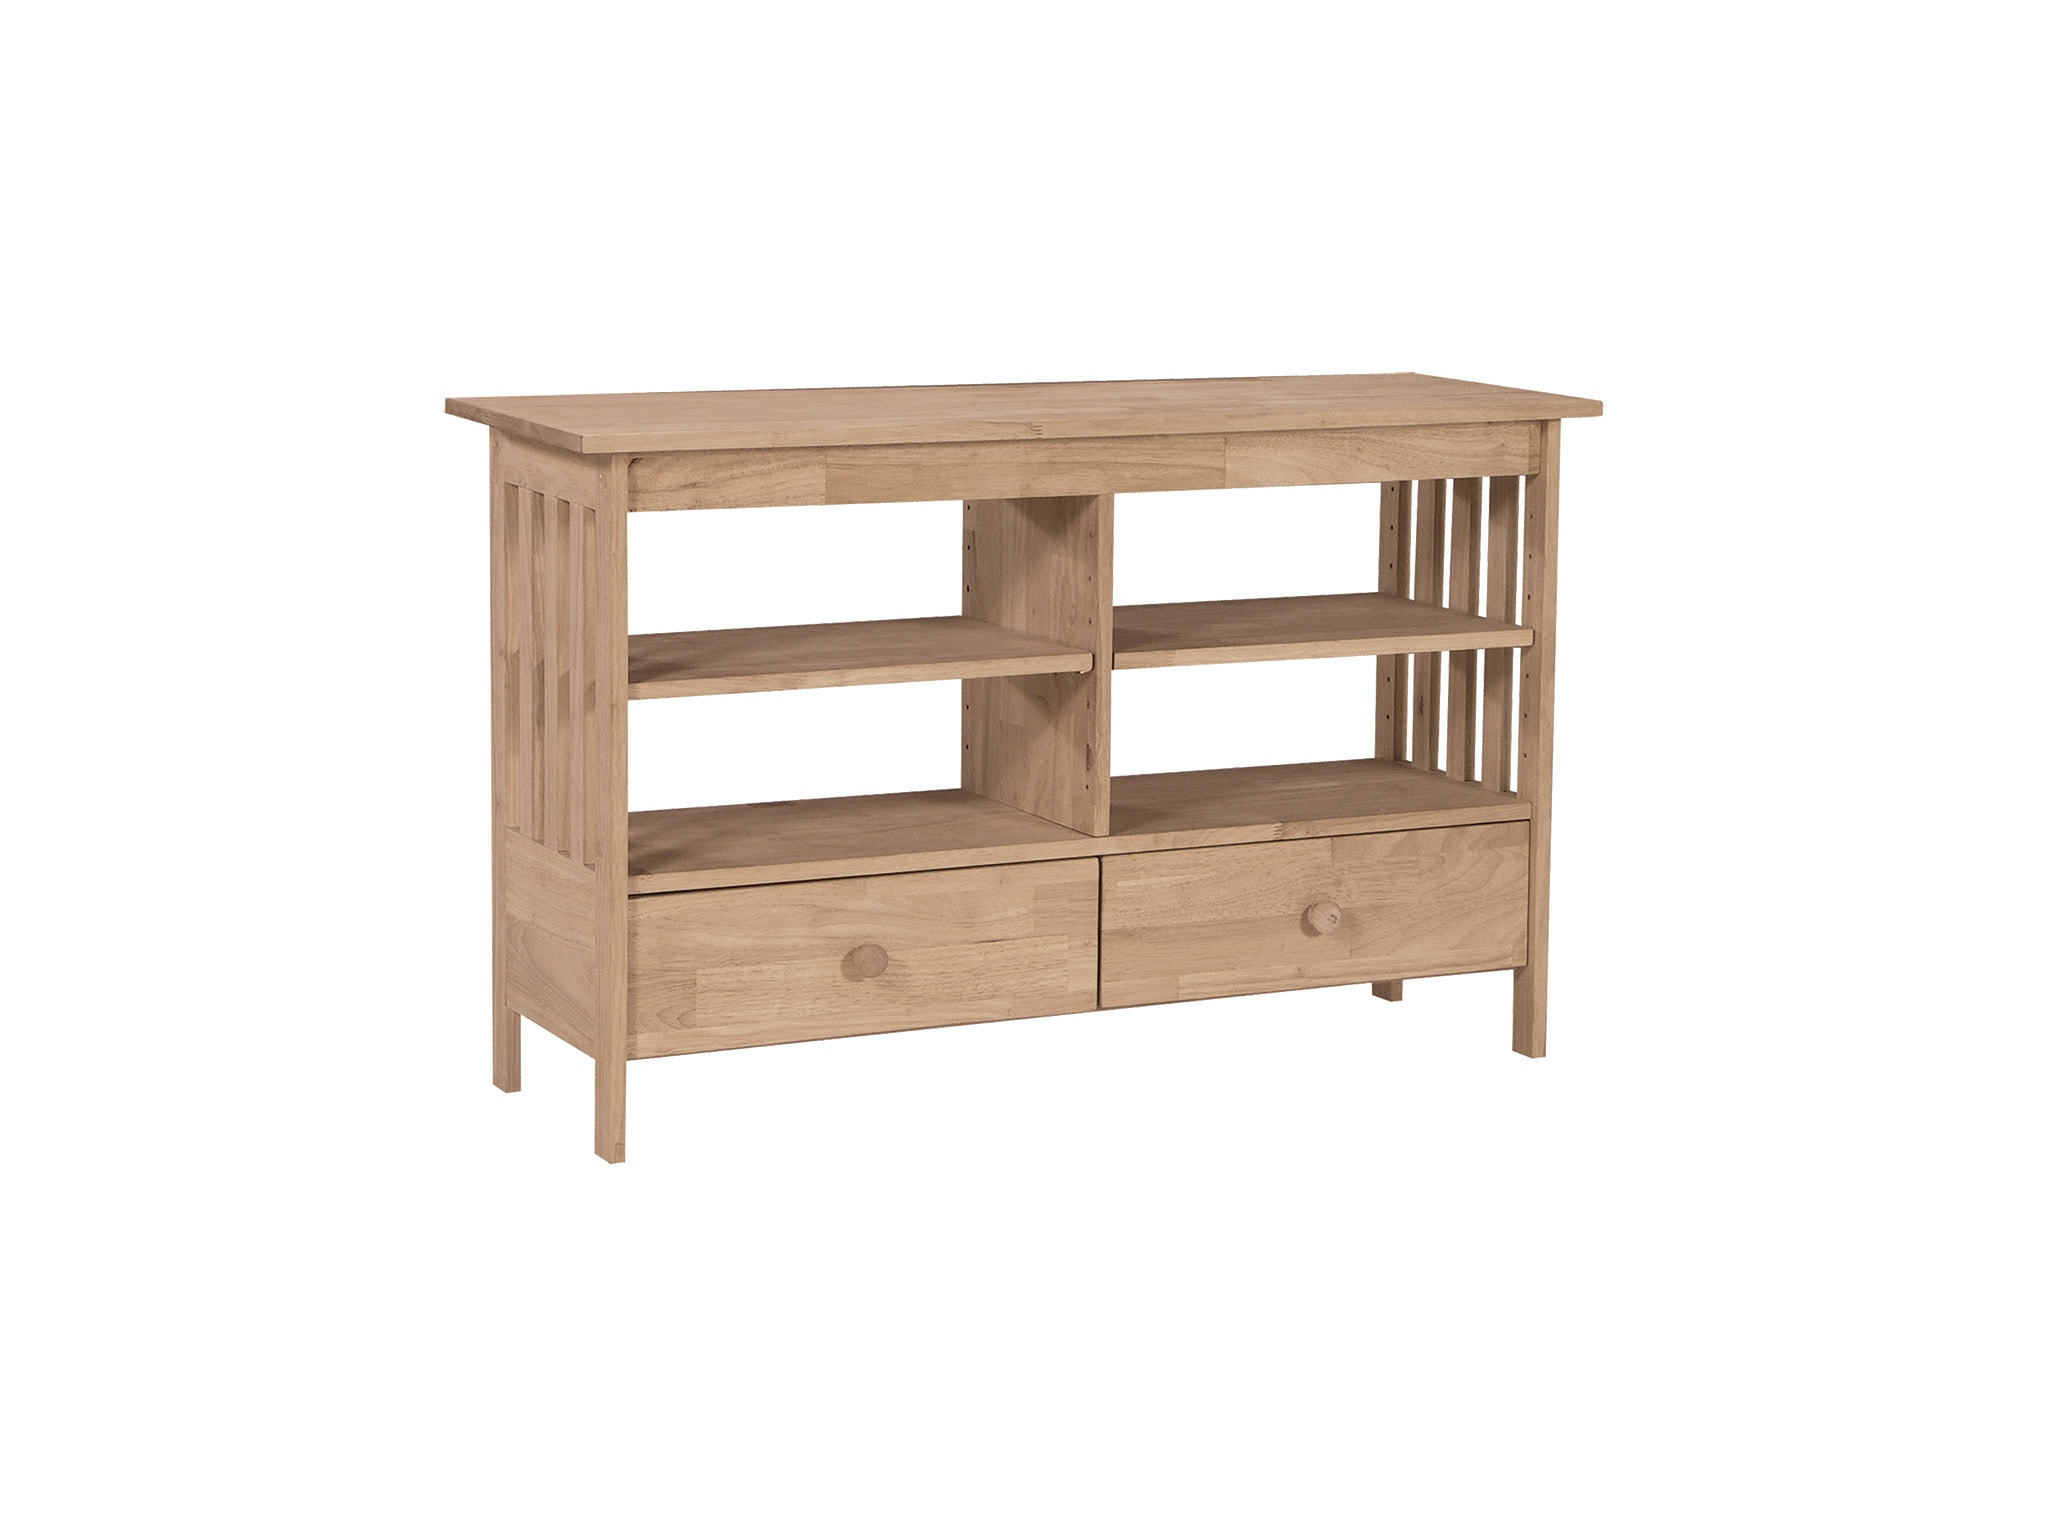 John Thomas Home Entertainment 48'' Mission Entertainment Stand<br><br>Two adjustable shelves & extension glides